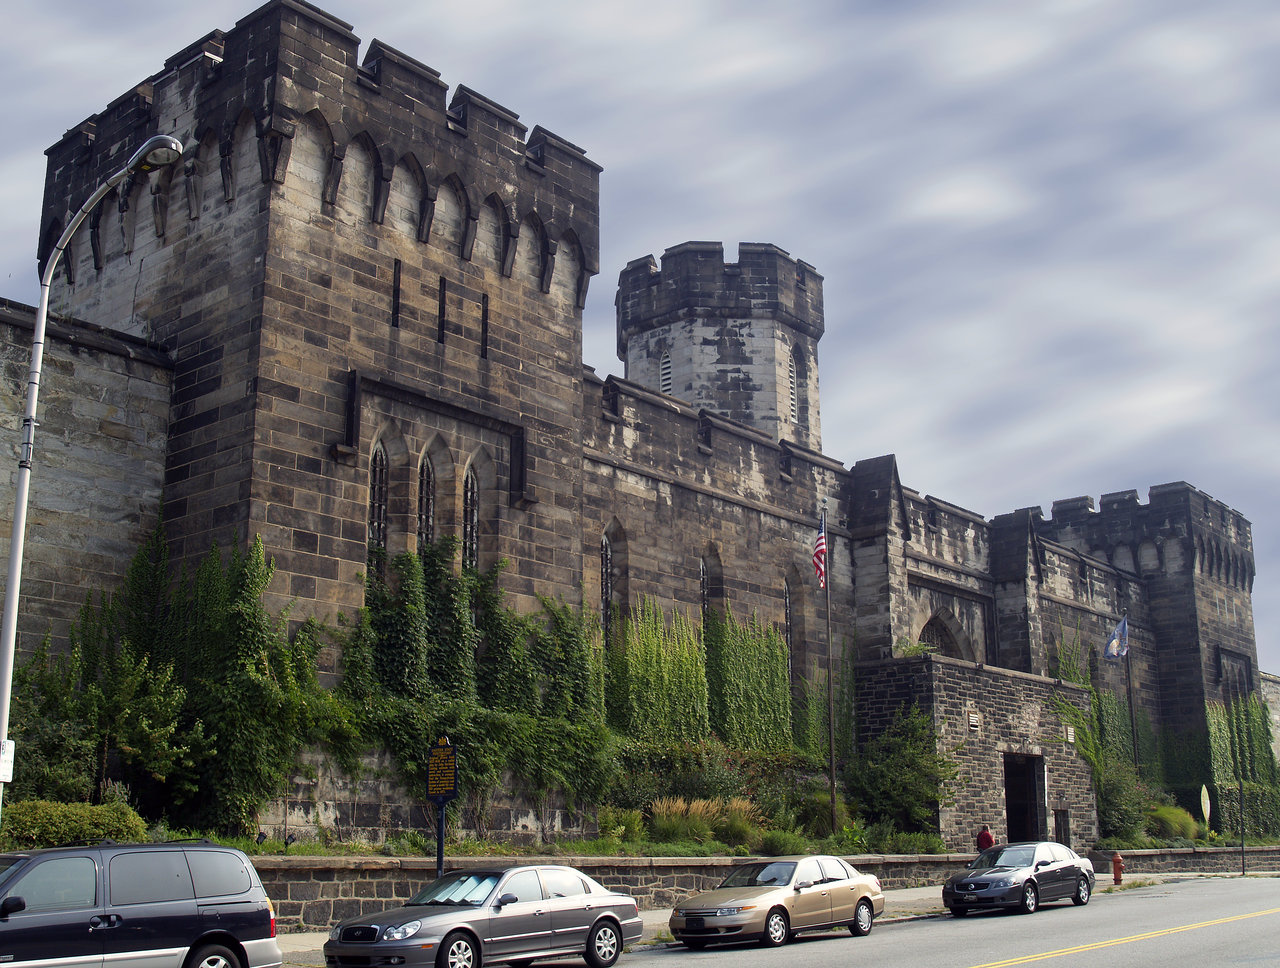 Eastern_State_Penitentiary_79_by_Dracoart_Stock